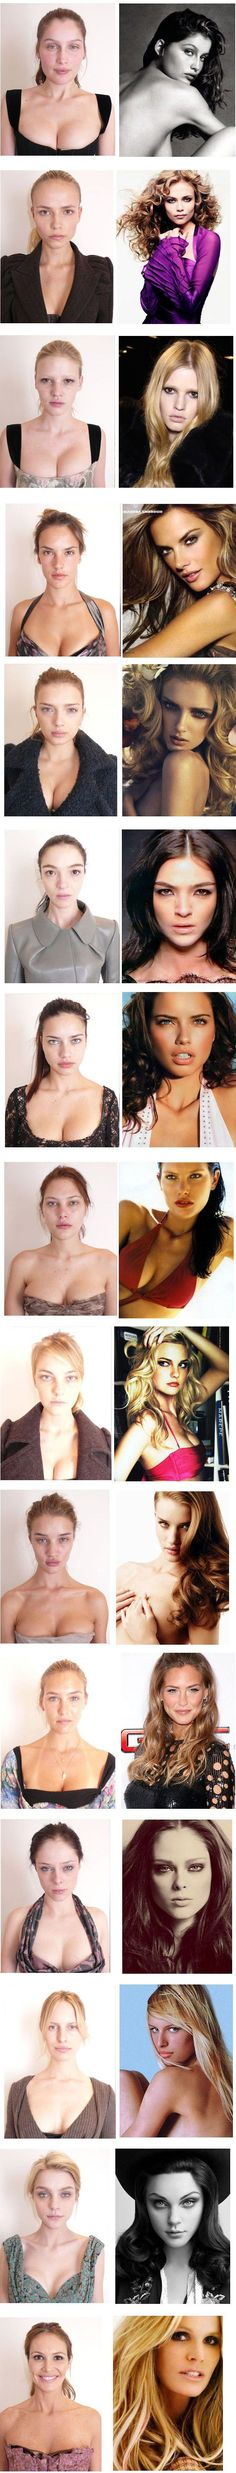 Victoria's secret models- makes you feel a little better huh?